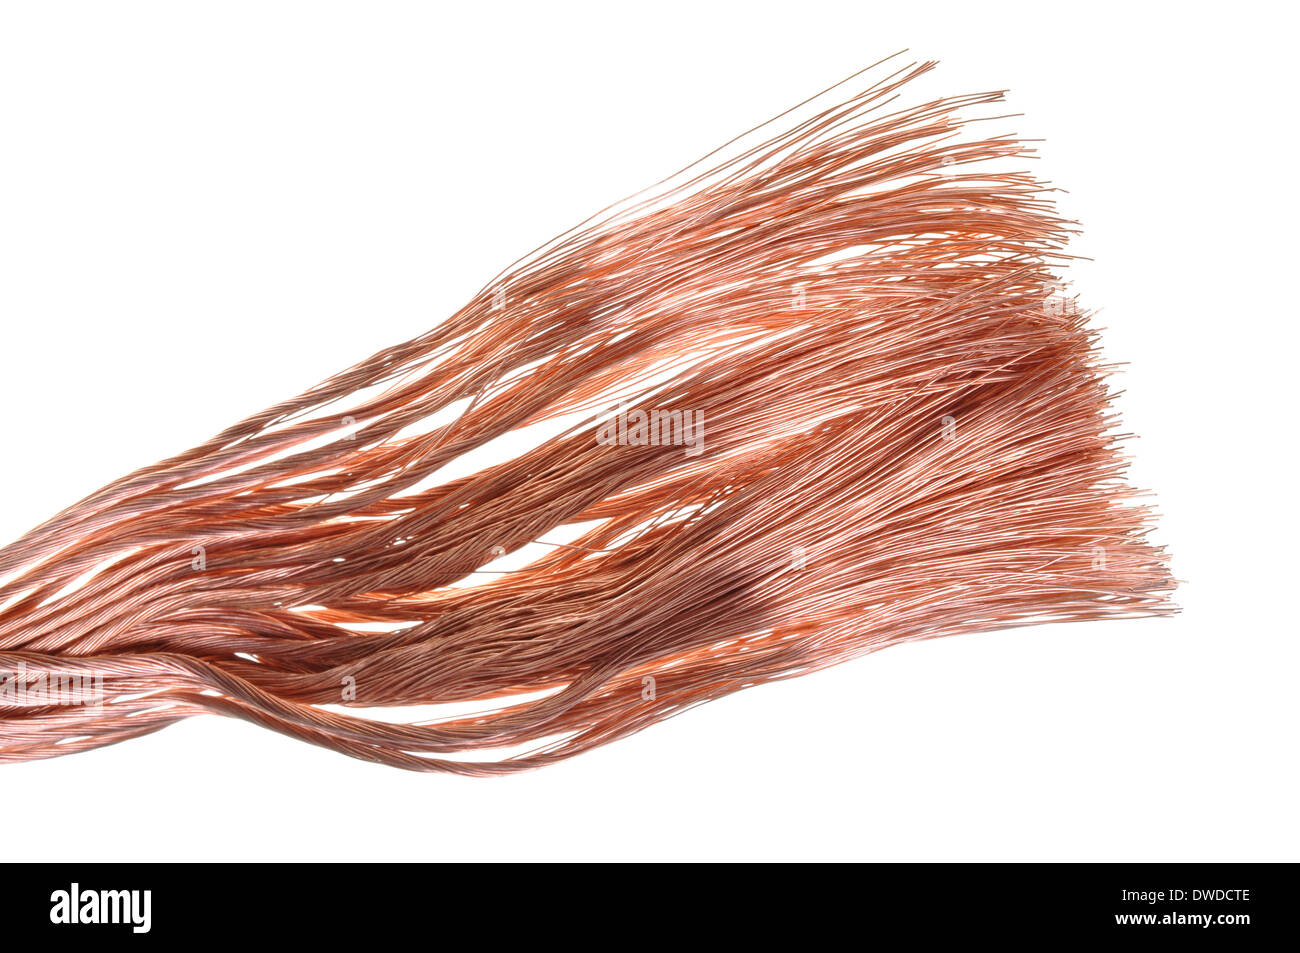 Copper Wire Industrial Raw Materials Stockfotos & Copper Wire ...